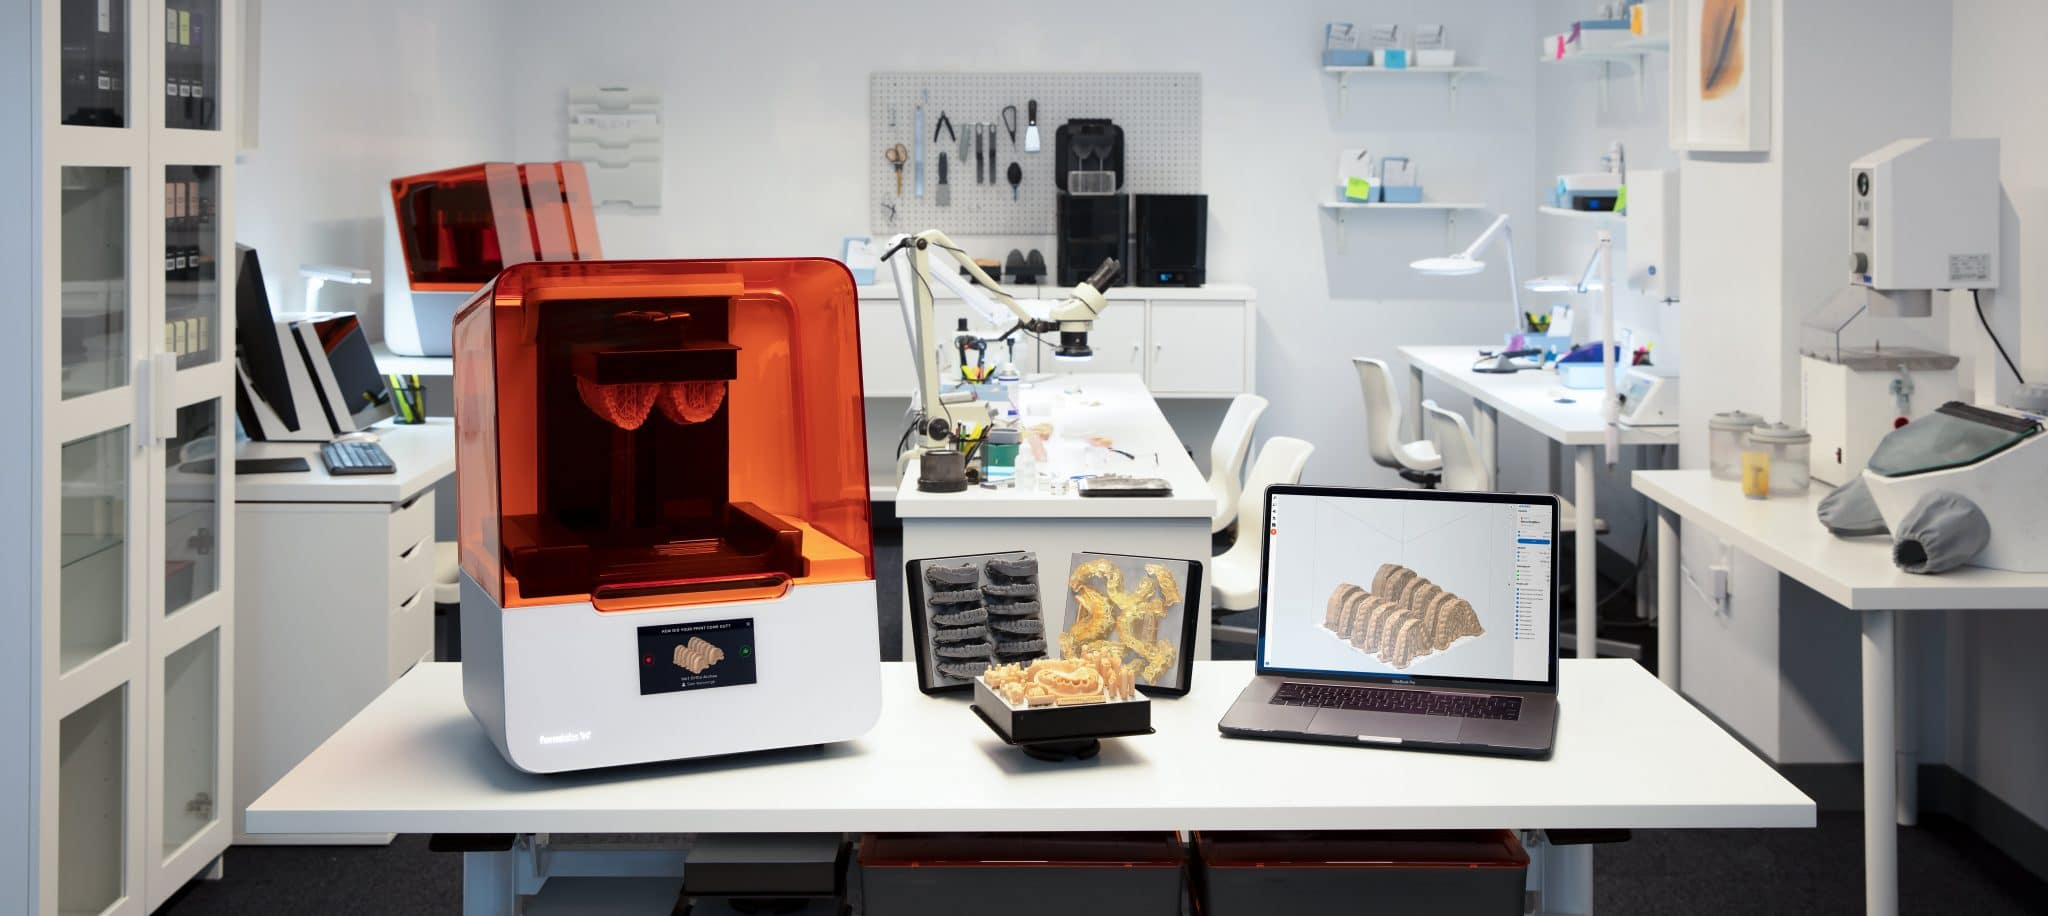 GE Healthcare Formlabs